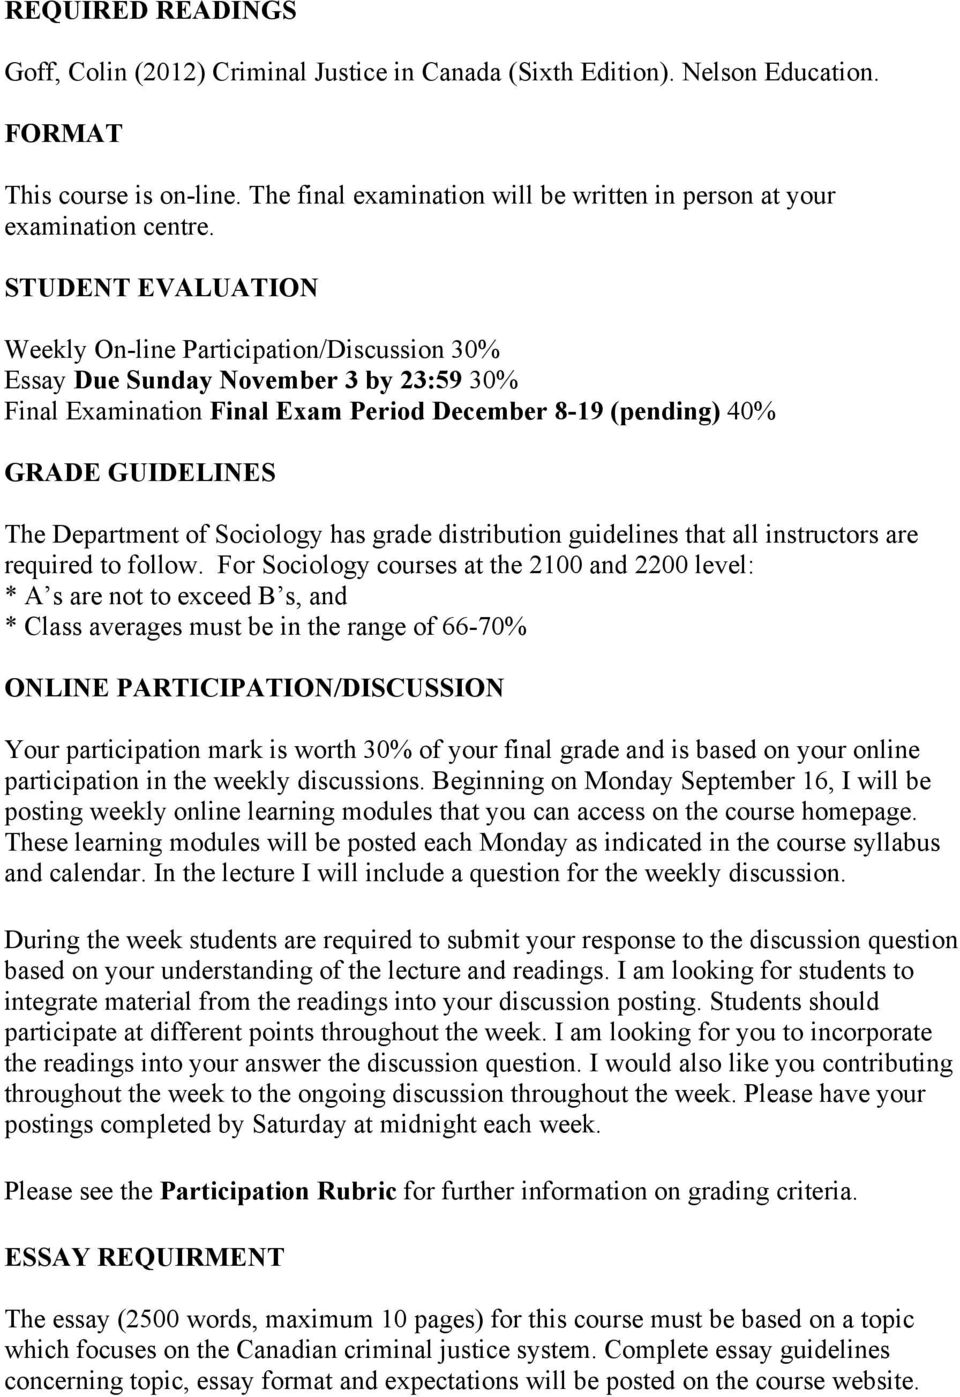 STUDENT EVALUATION Weekly On-line Participation/Discussion 30% Essay Due Sunday November 3 by 23:59 30% Final Examination Final Exam Period December 8-19 (pending) 40% GRADE GUIDELINES The Department